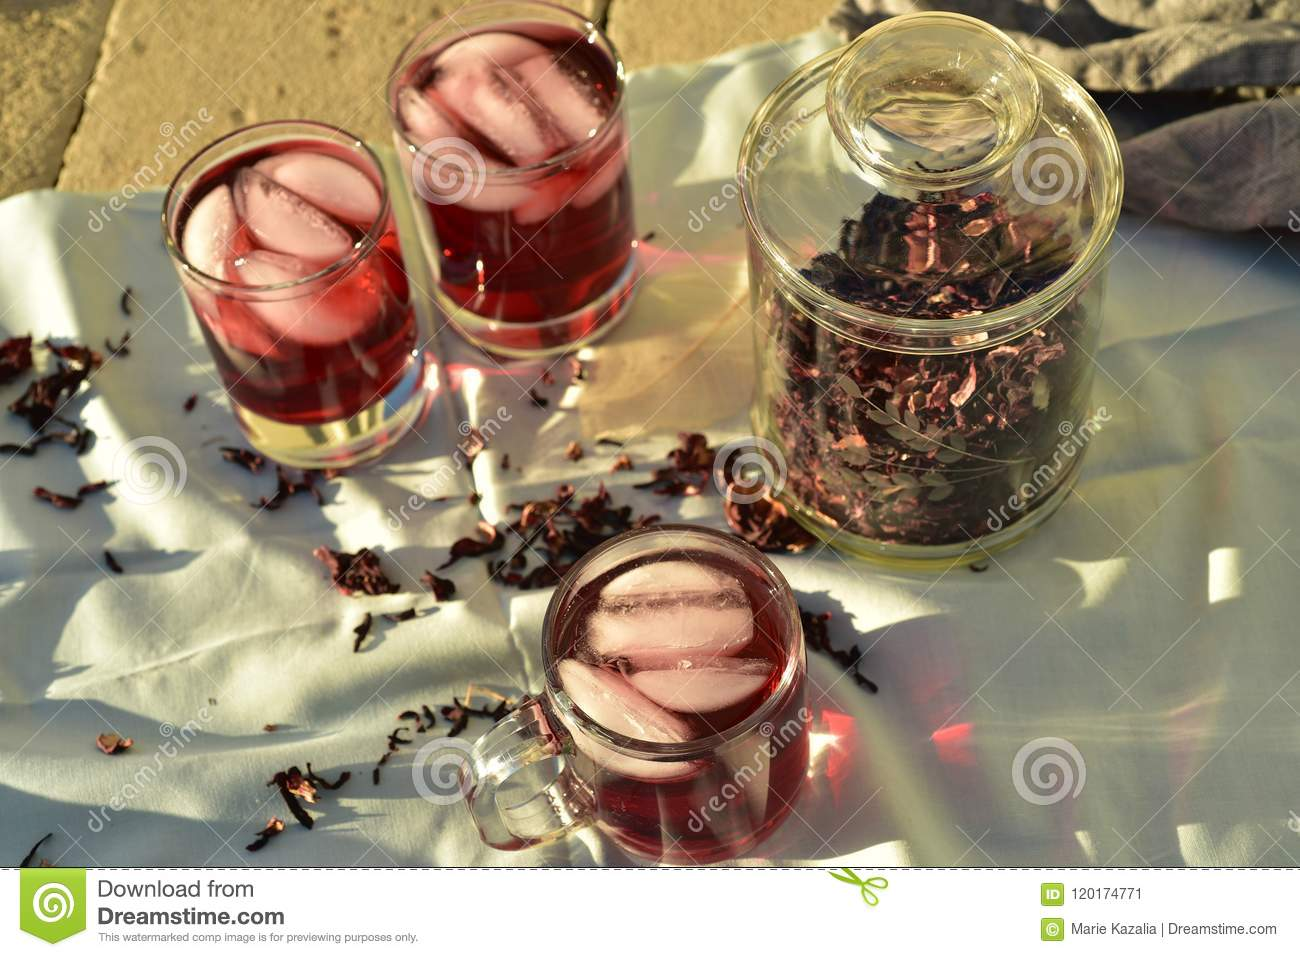 Iced tea made with dark red hibiscus flower petals stock image download iced tea made with dark red hibiscus flower petals stock image image of drink izmirmasajfo